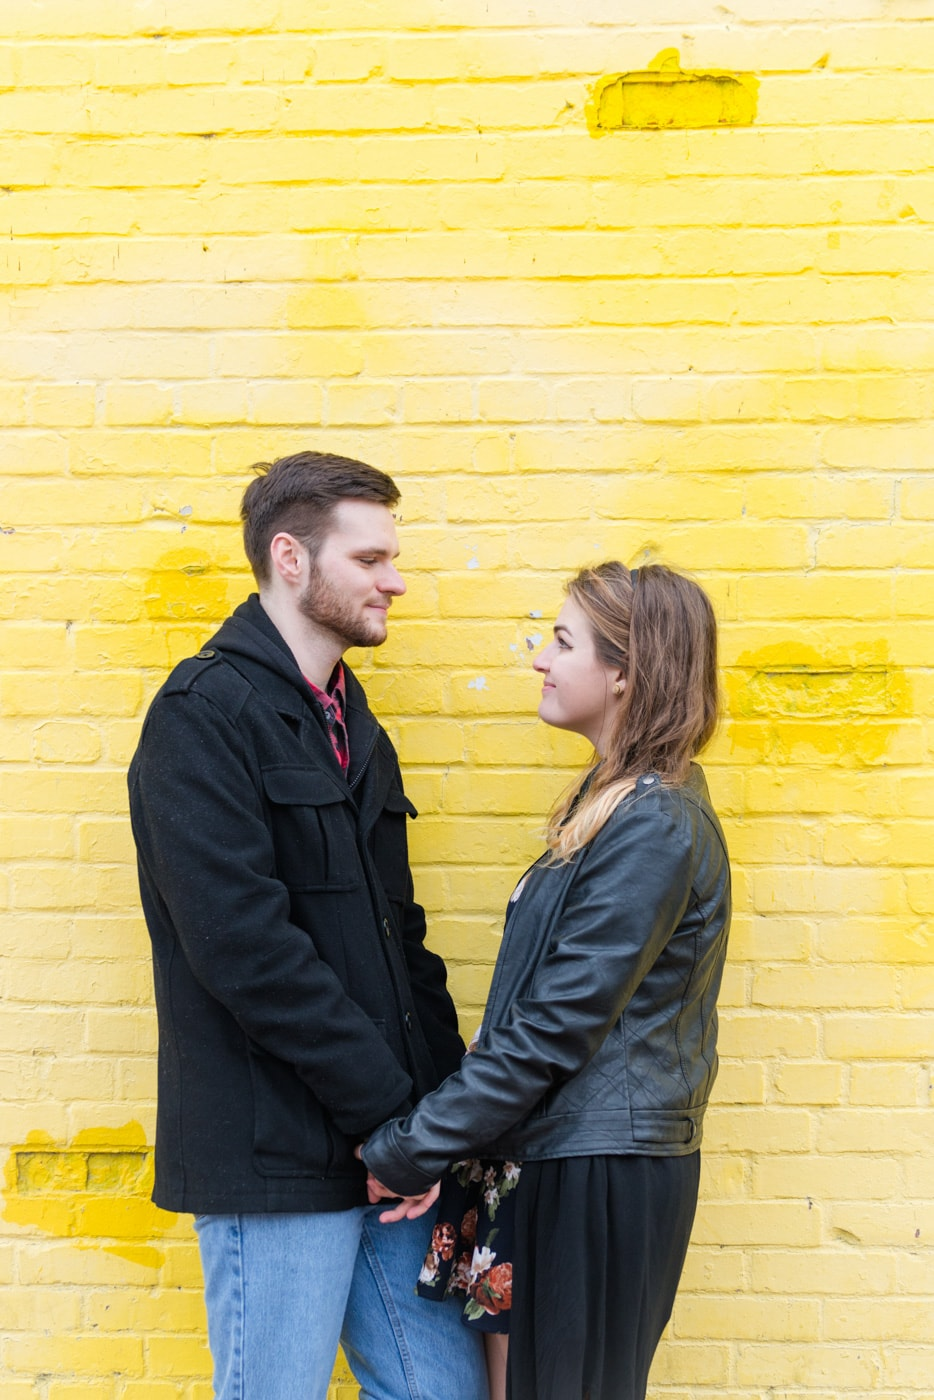 A young couple hold hands and look at each other by a yellow brick wall in Old Town Alexandria